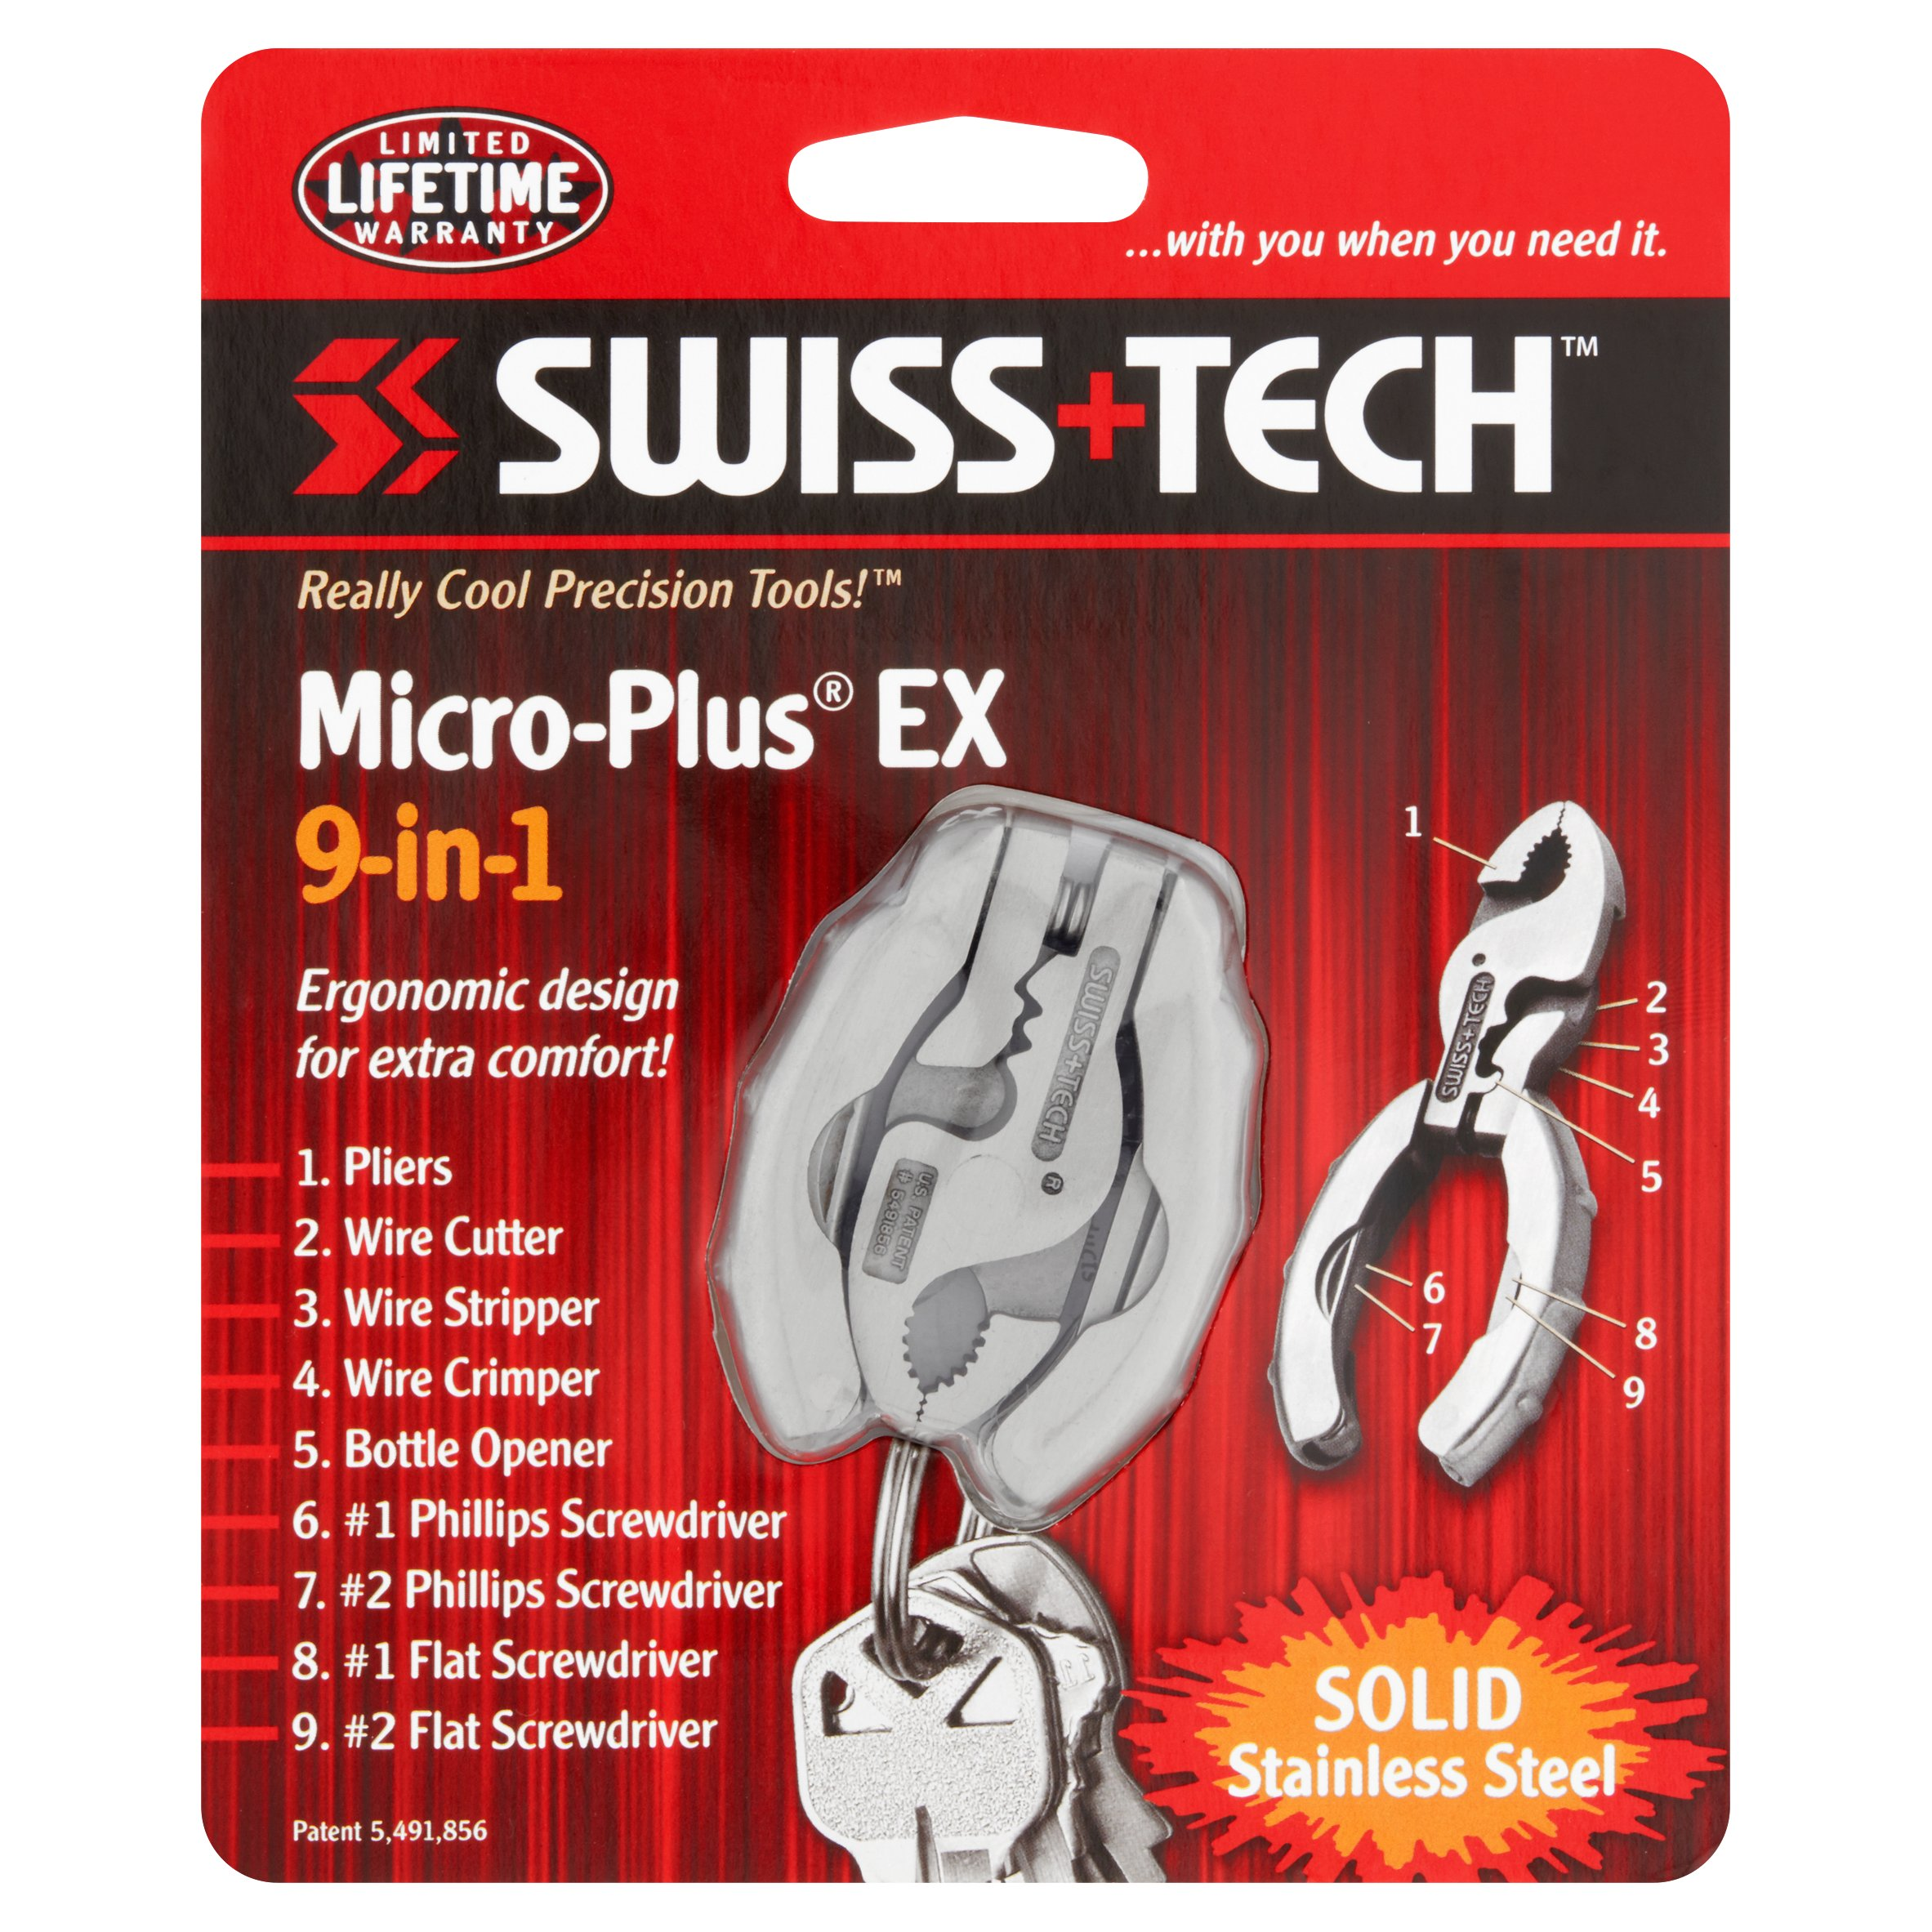 Swiss+Tech Micro-Plus EX 9-in-1 Pocket Tool Kit